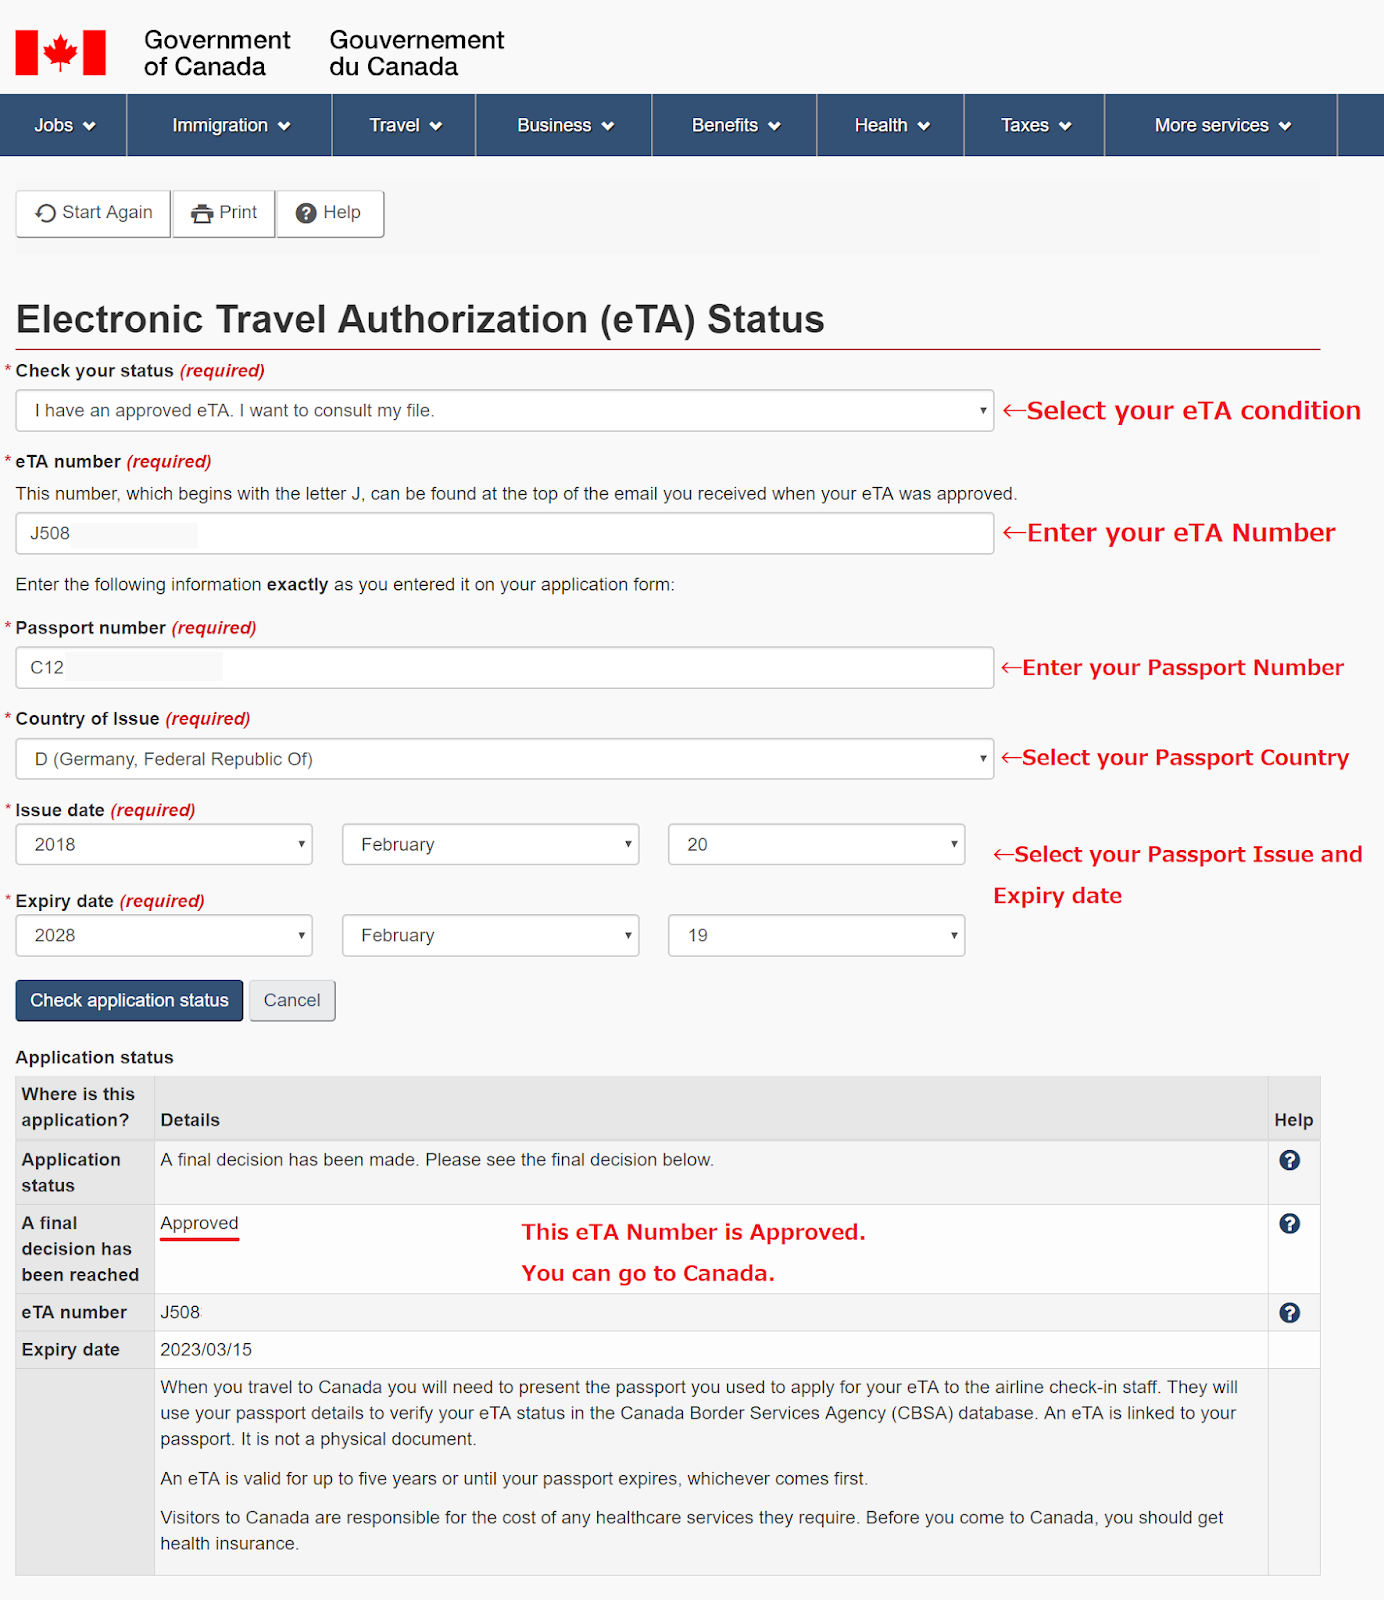 How can I check the status of my eTA application?